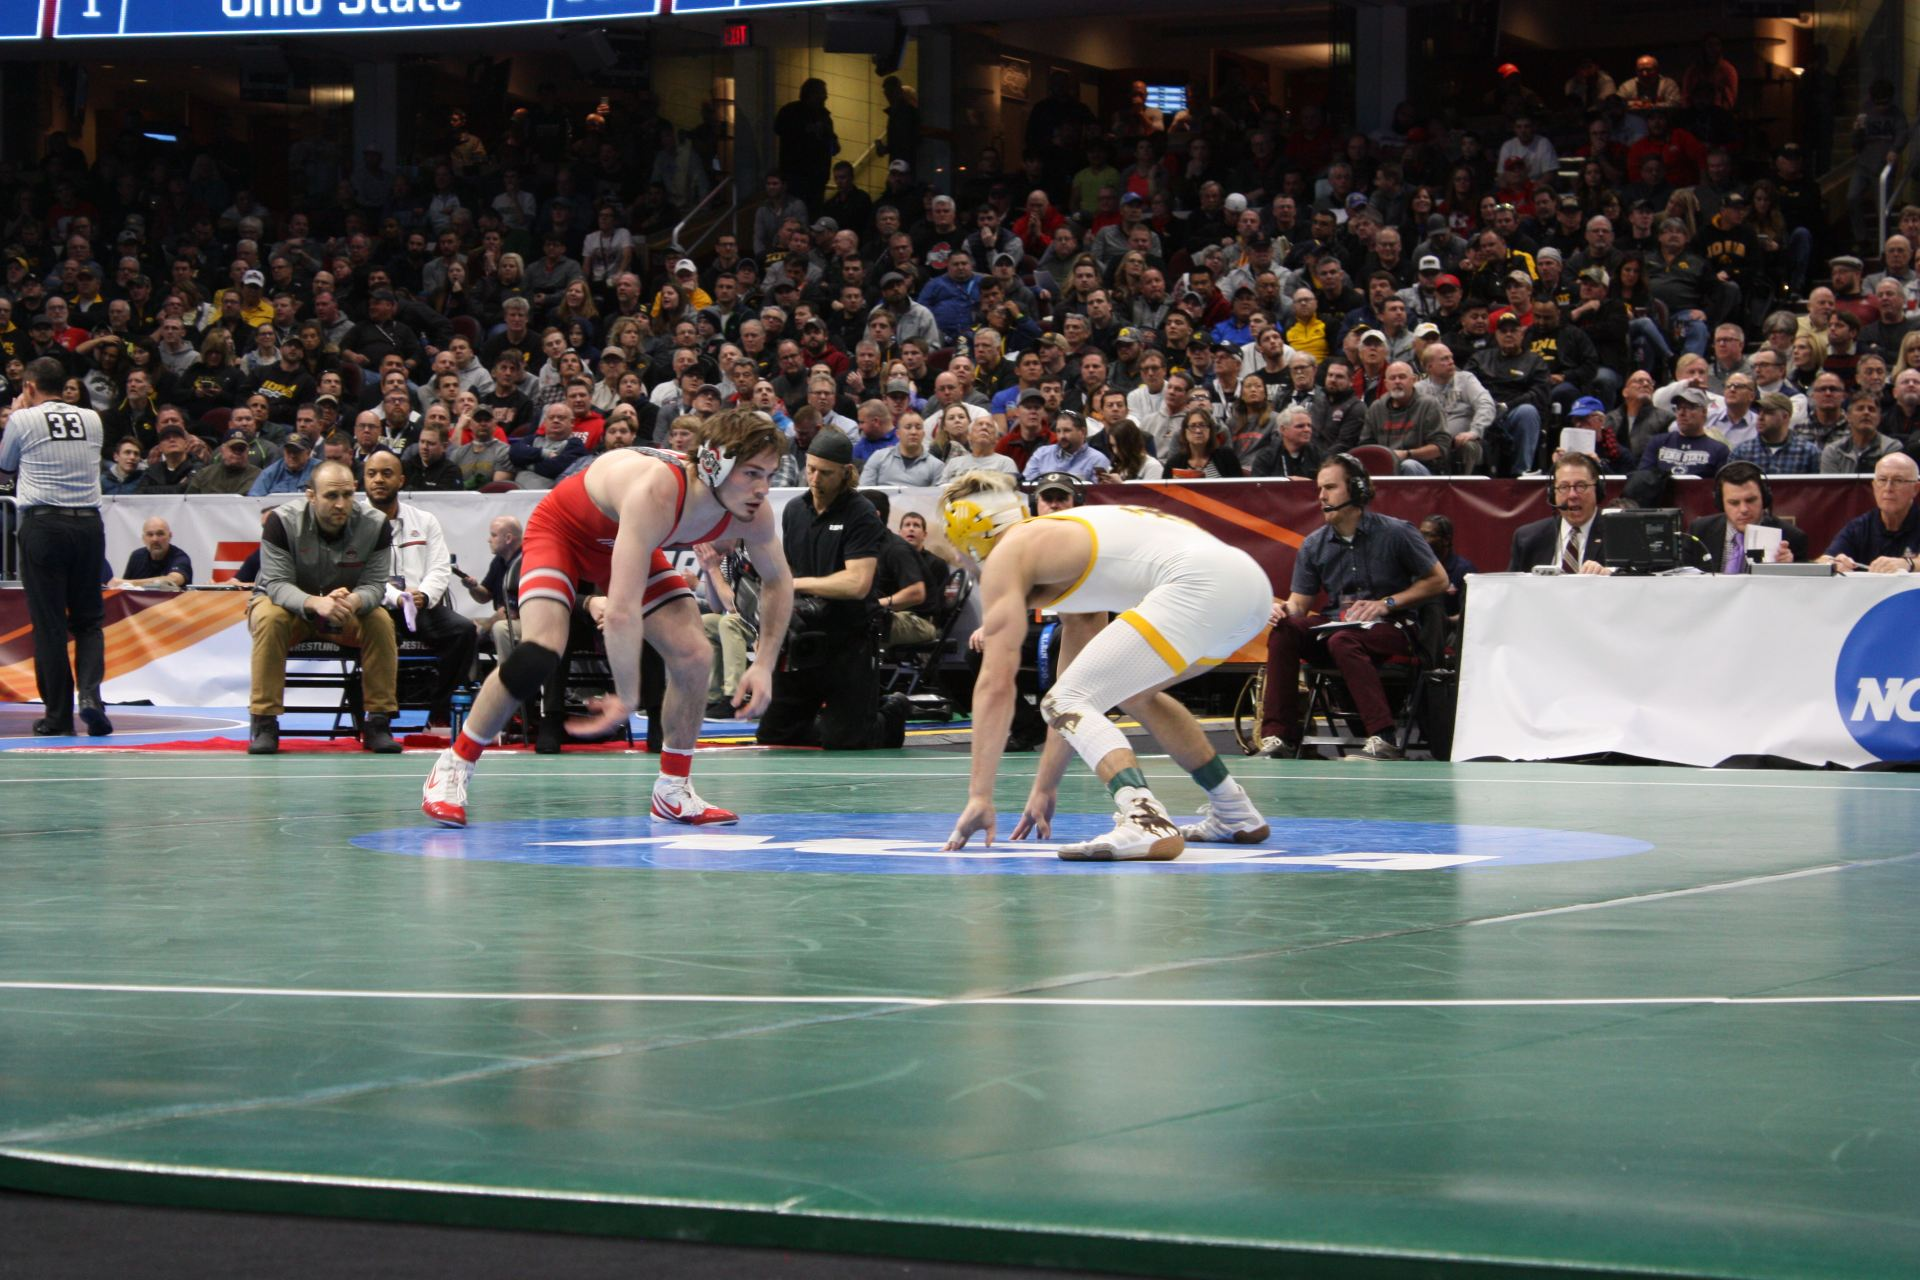 super popular 18351 56409 Ohio State junior Joey McKenna faces off with Wyoming s Bryce Meredith on  Friday, March 16, 2018 at the Quicken Loans Arena in Cleveland at the NCAA  ...